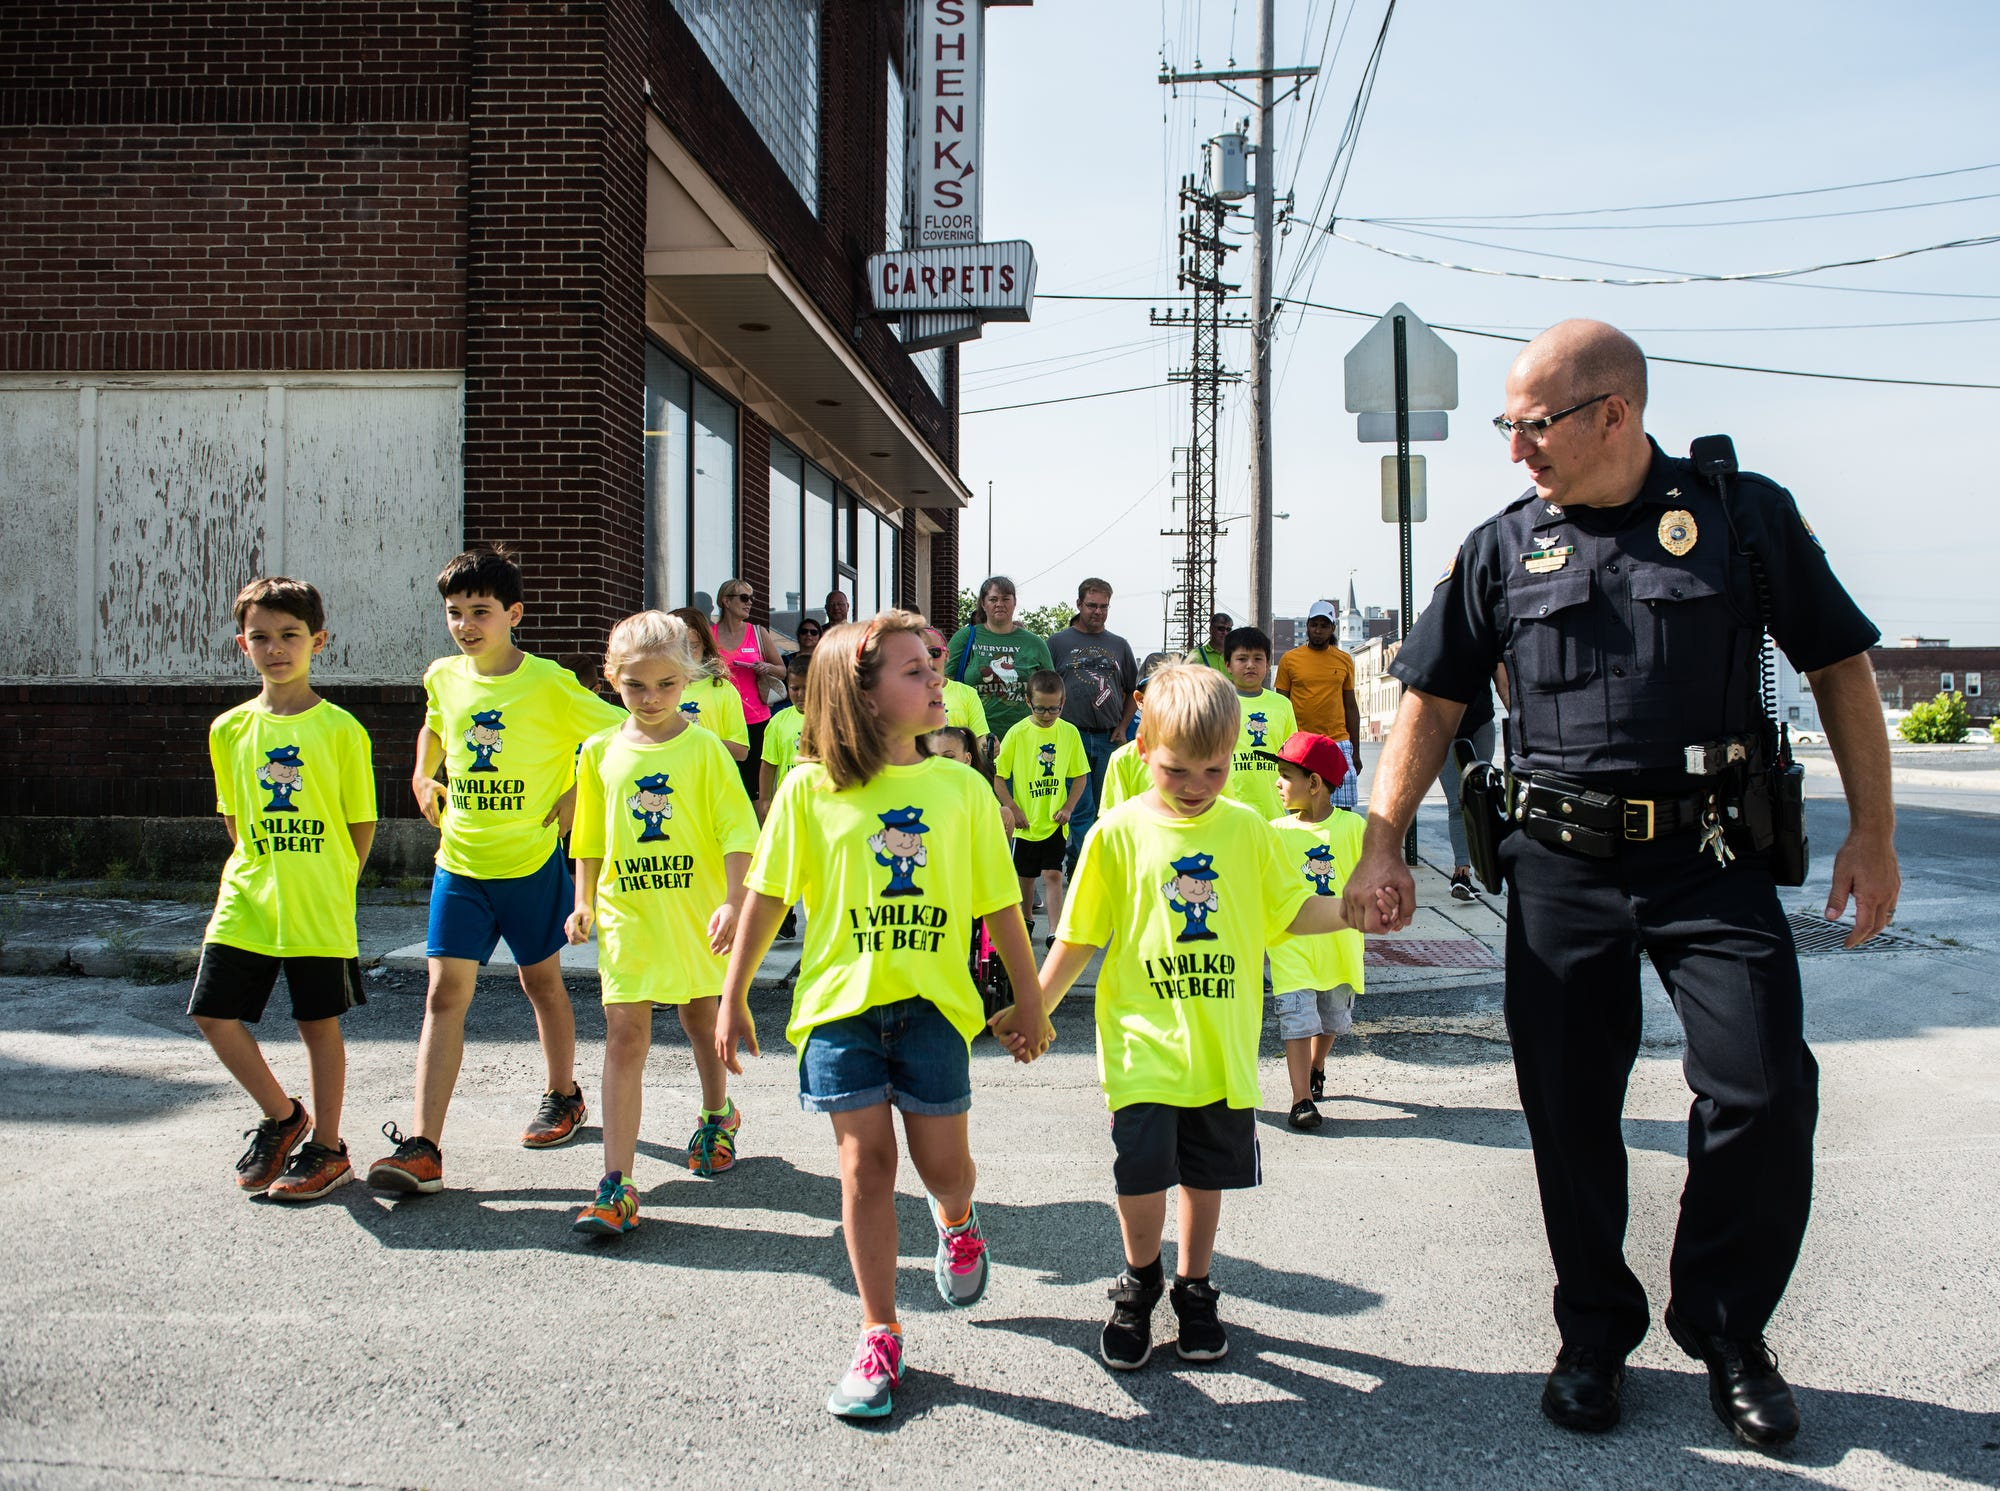 Lebanon City Police Chief Todd Breiner walks with the kids during the second Walk with a Cop event hosted by the City of Lebanon and the Lebanon Valley YMCA on Saturday, July 22, 2017. During the walk Briner went over safety tips when walking through the city.